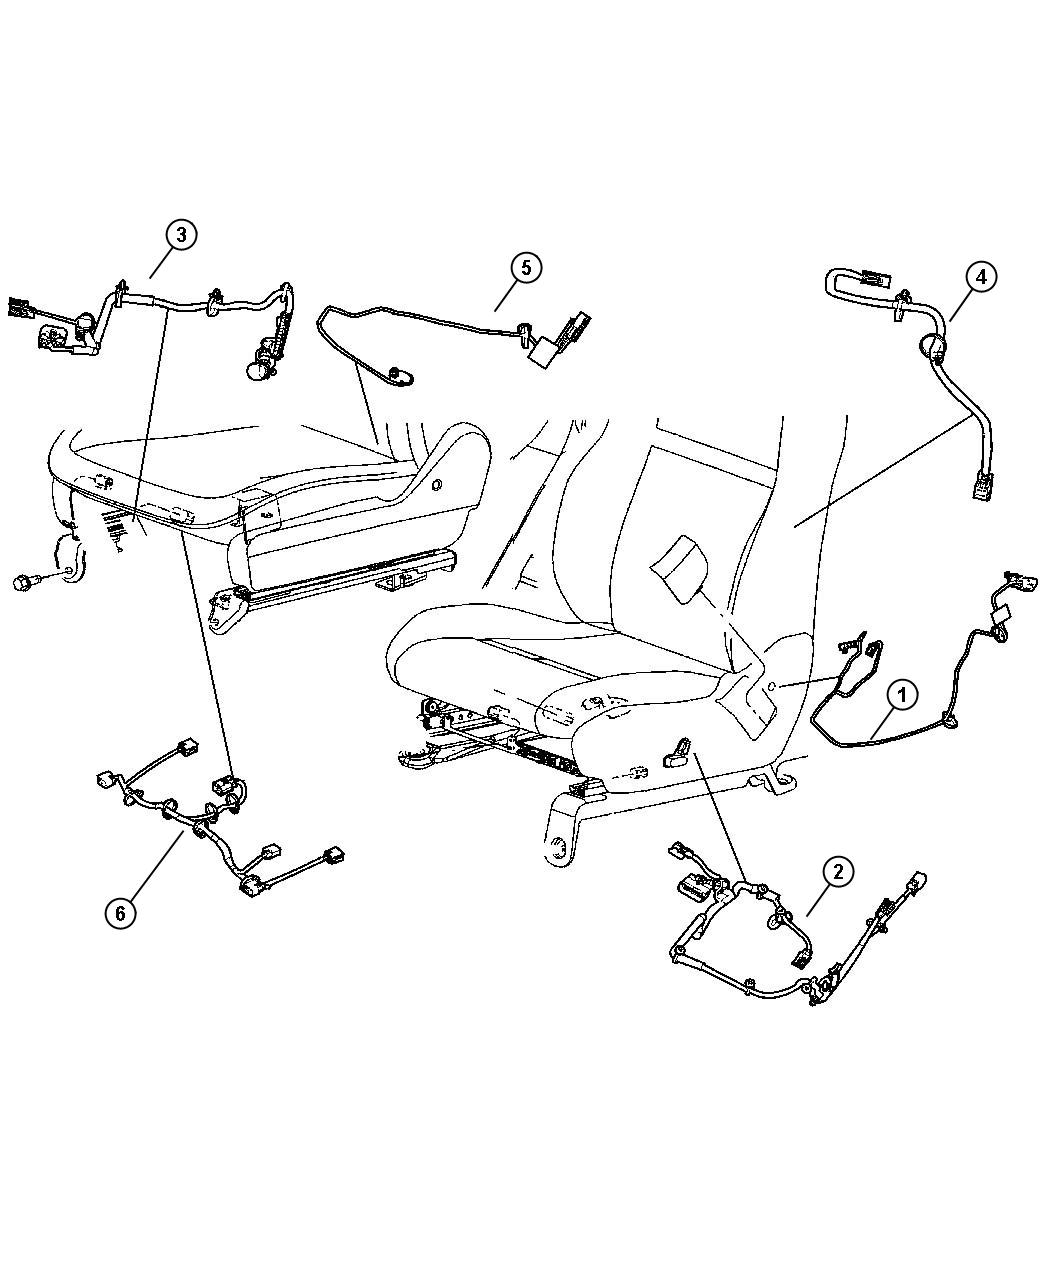 2013 Dodge Dart Wiring. Seat. Trim: [performance seats w